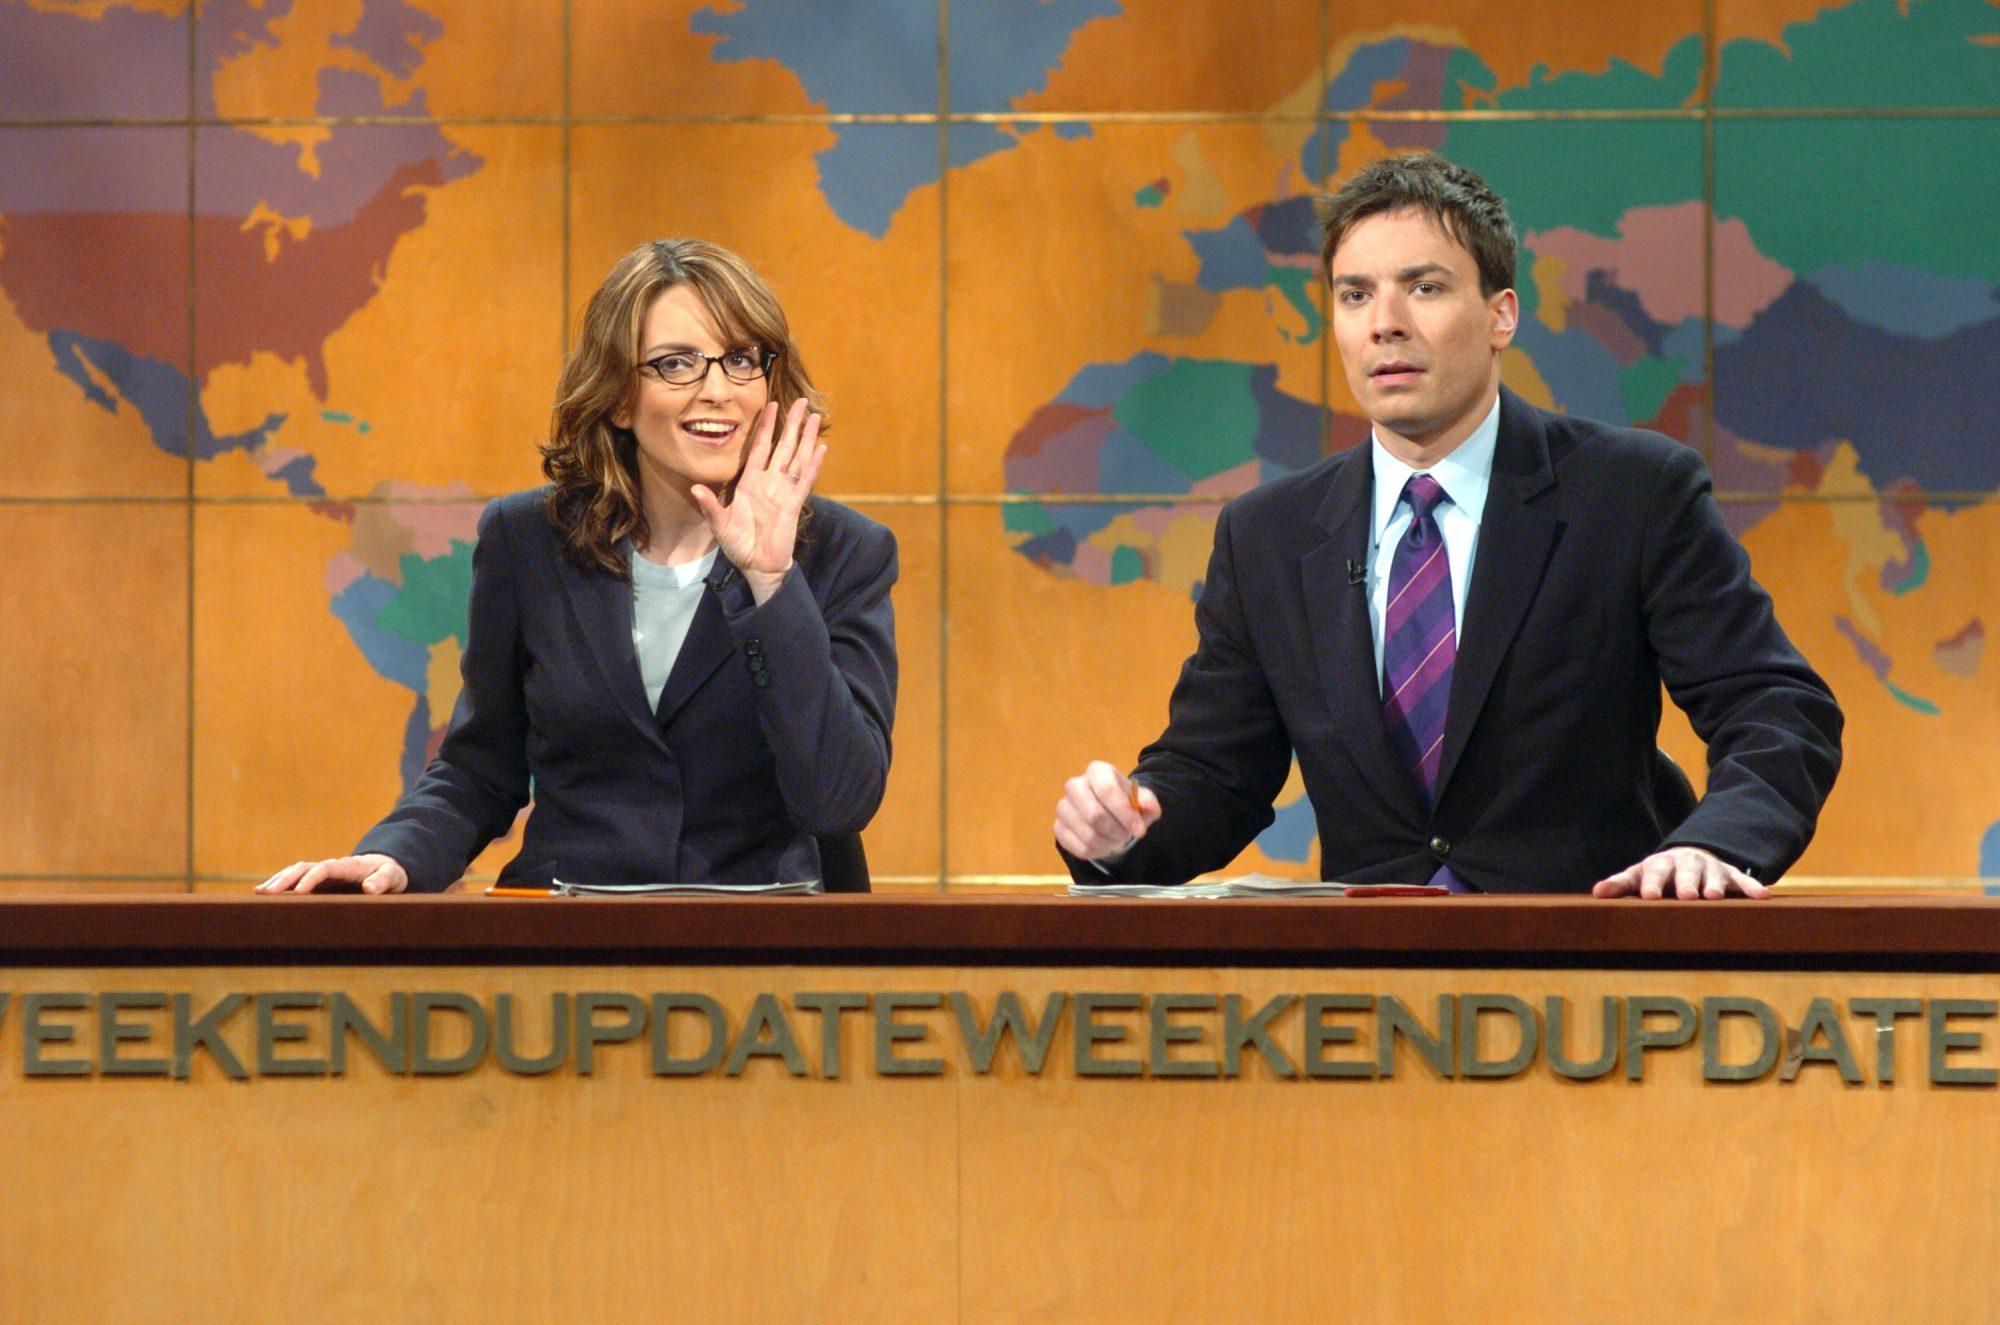 Jimmy-Fallon-and-Tina-Fey.jpg